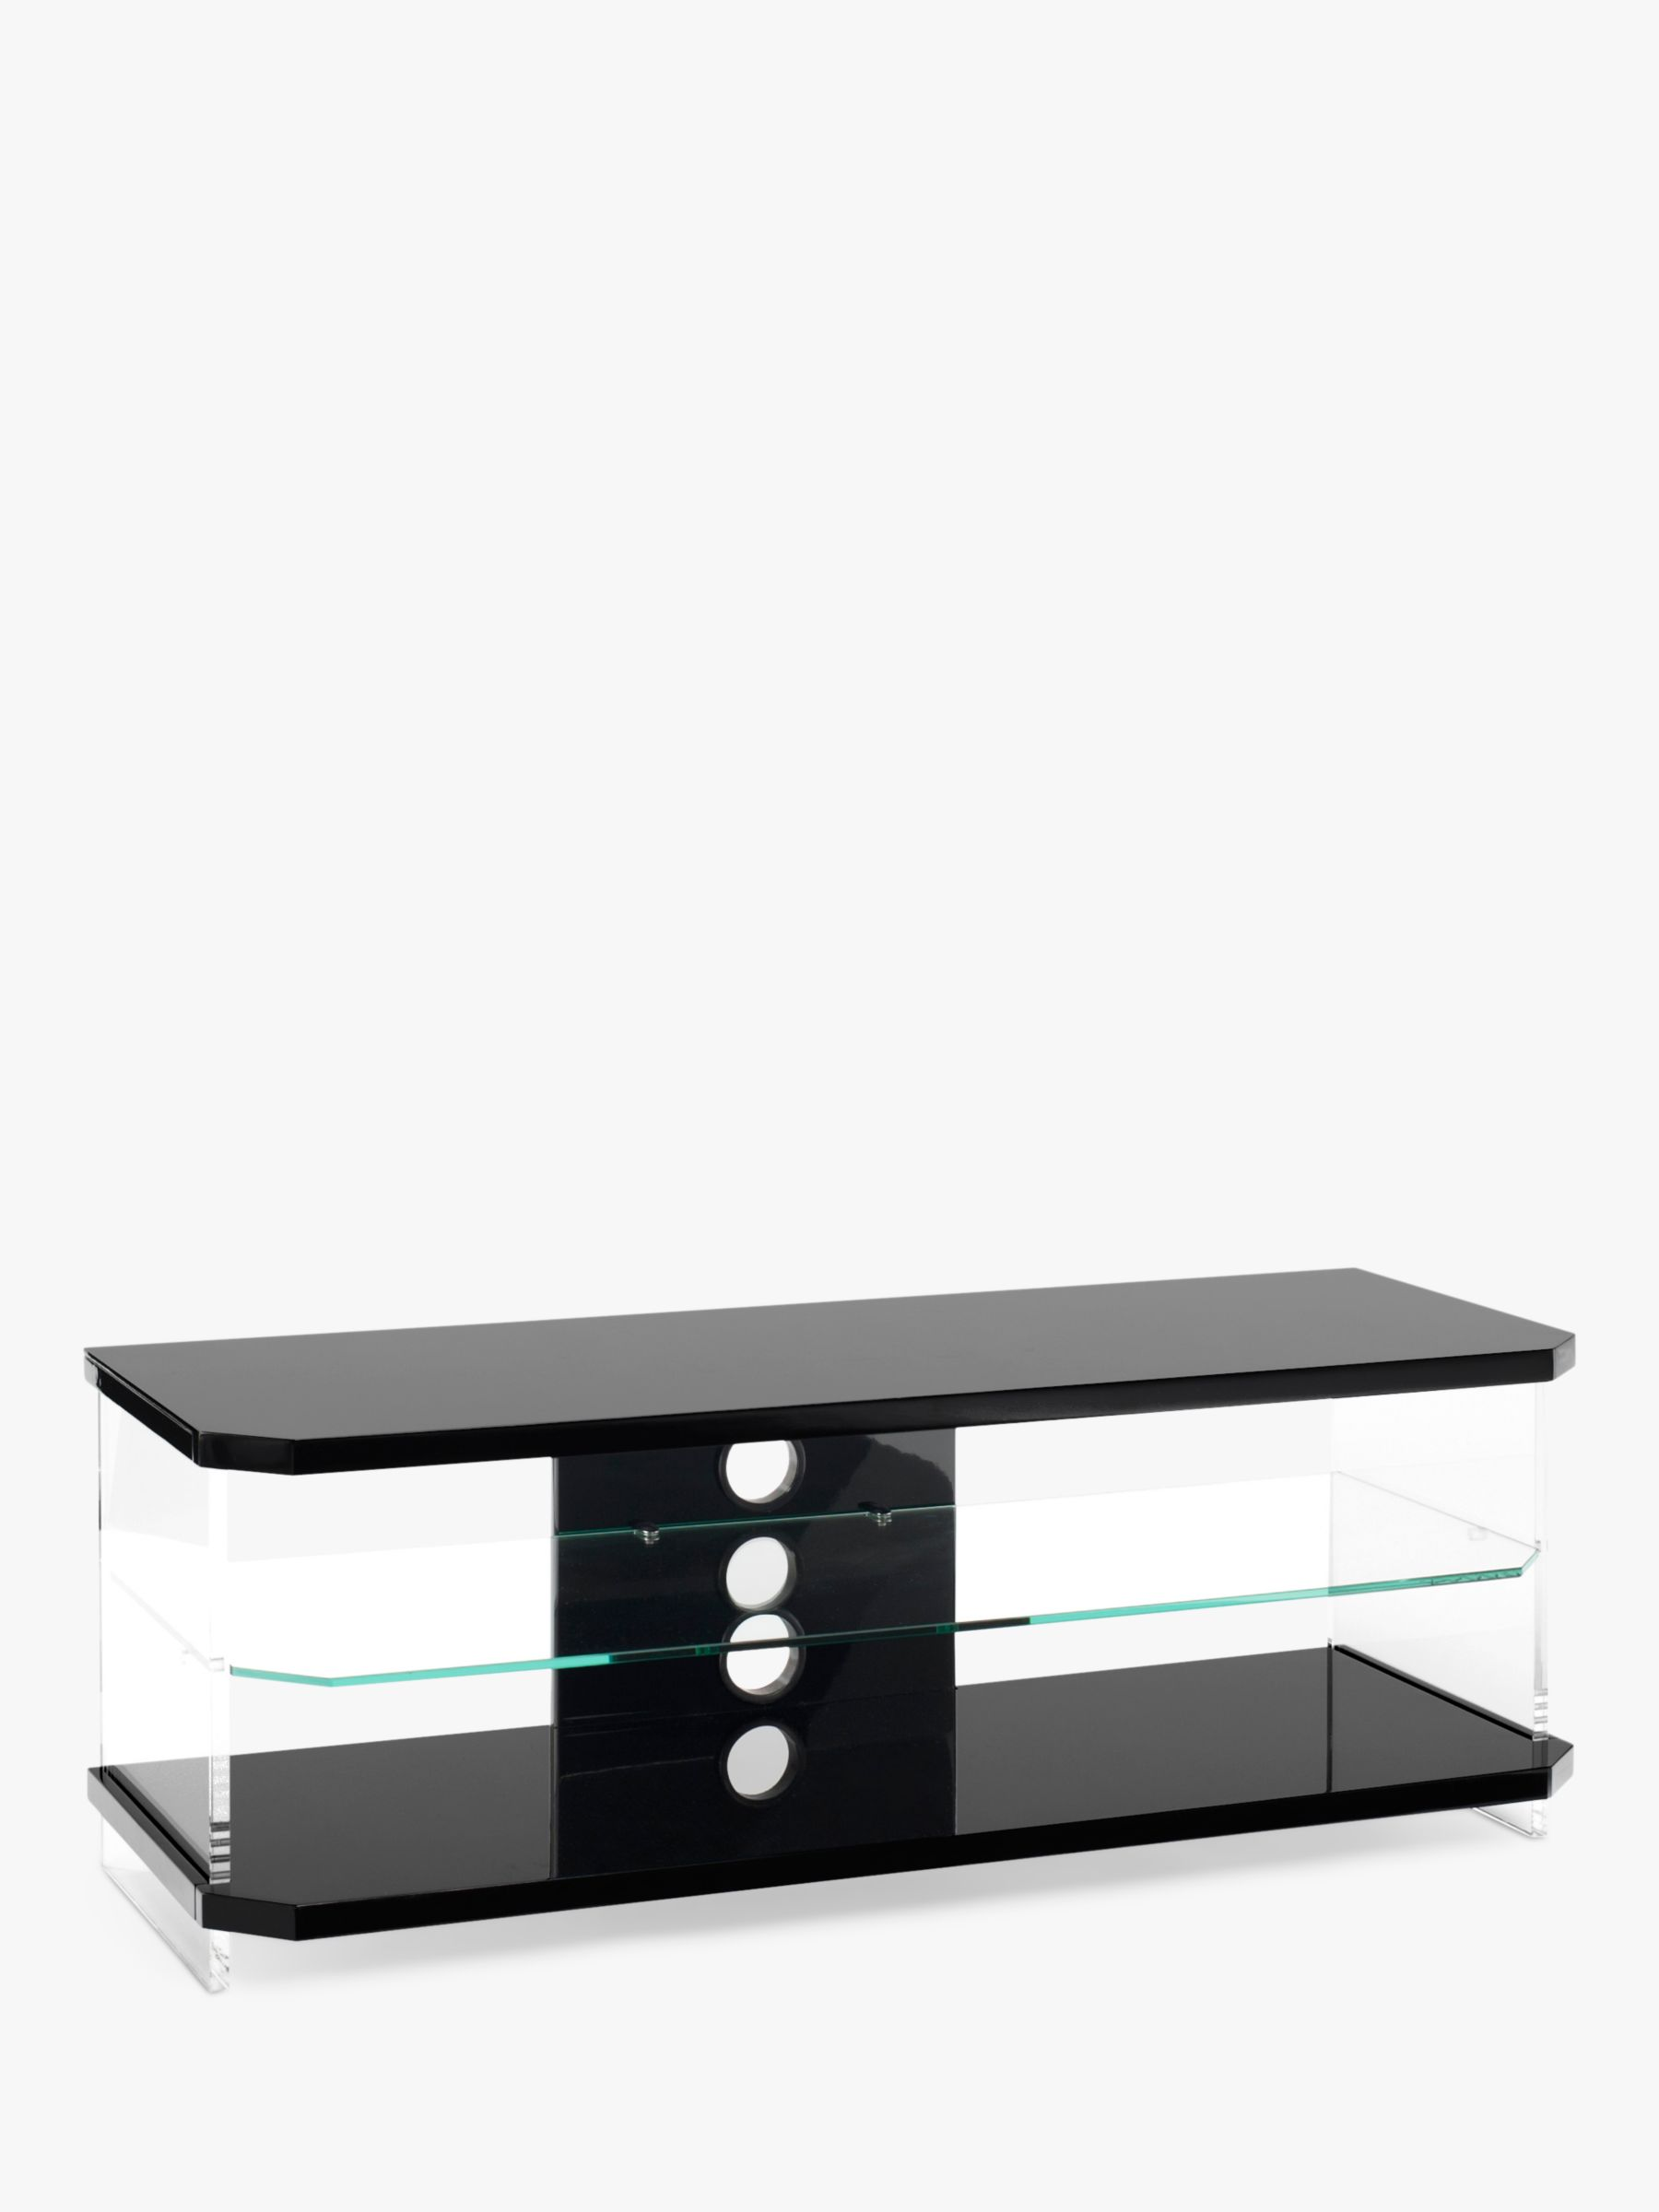 Techlink Techlink AI110 Air TV Stand for TVs up to 55